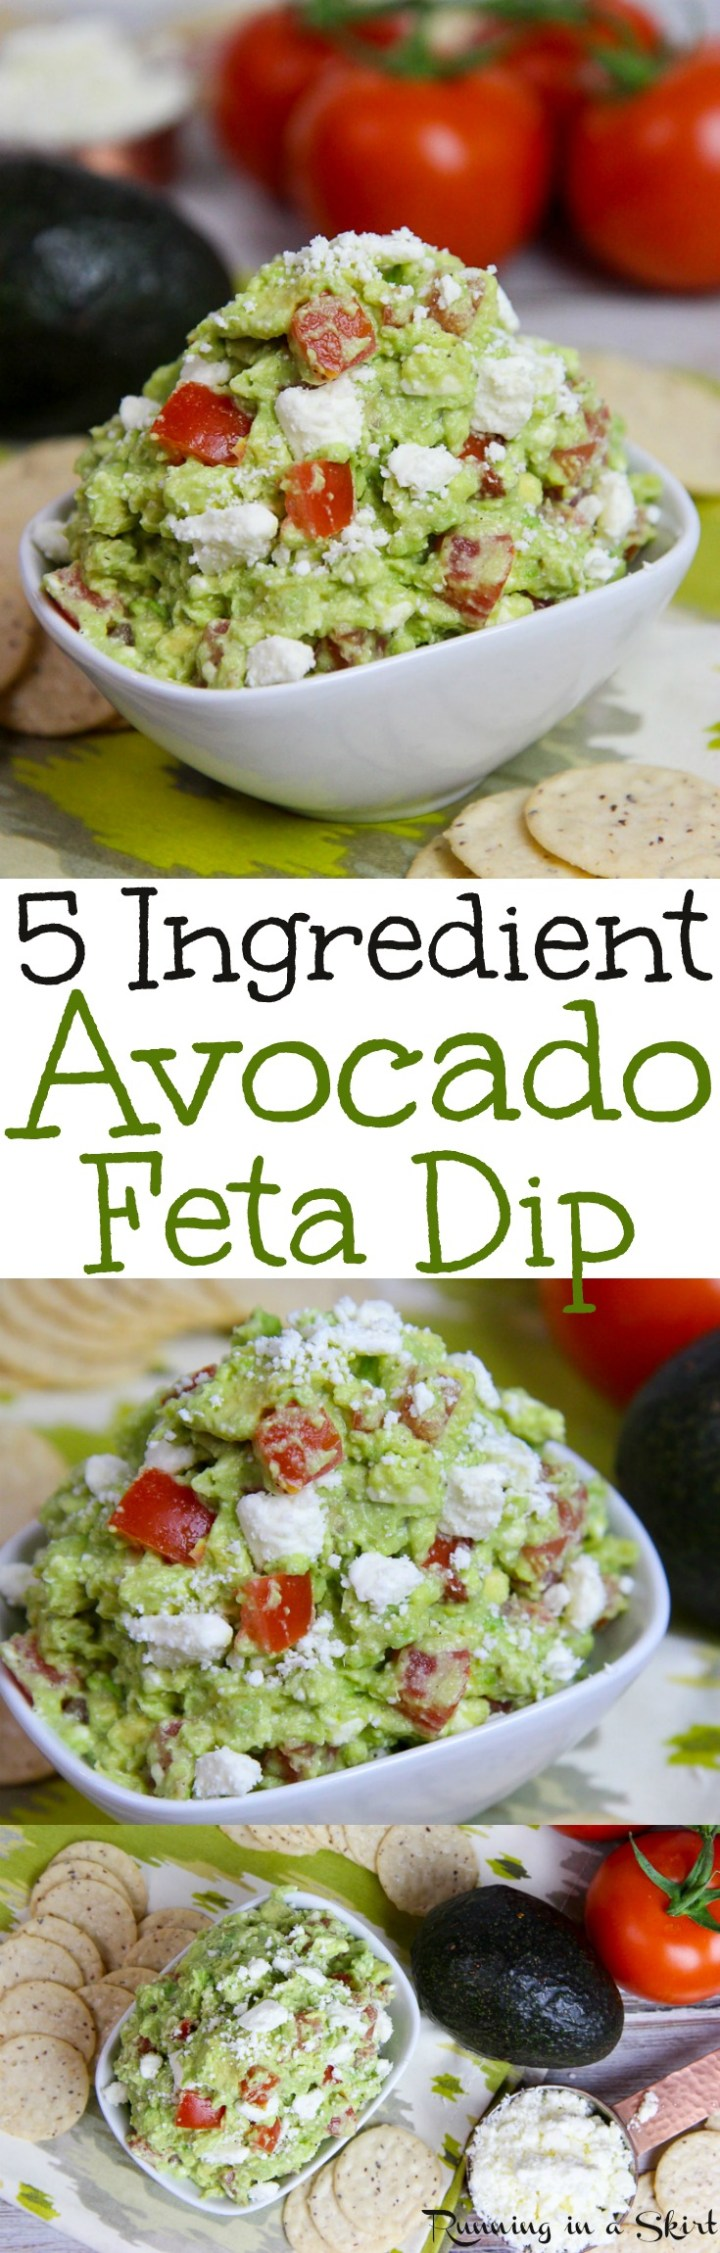 5 Ingredient Easy Avocado Feta Dip recipe- Mediterranean flavors with lemon, garlic and tomato! A perfect appetizer!  Use as simple healthy food for parties (like Super Bowl or Holidays), snacks or a cold spread for a wrap or sandwich. / Running in a Skirt via @juliewunder